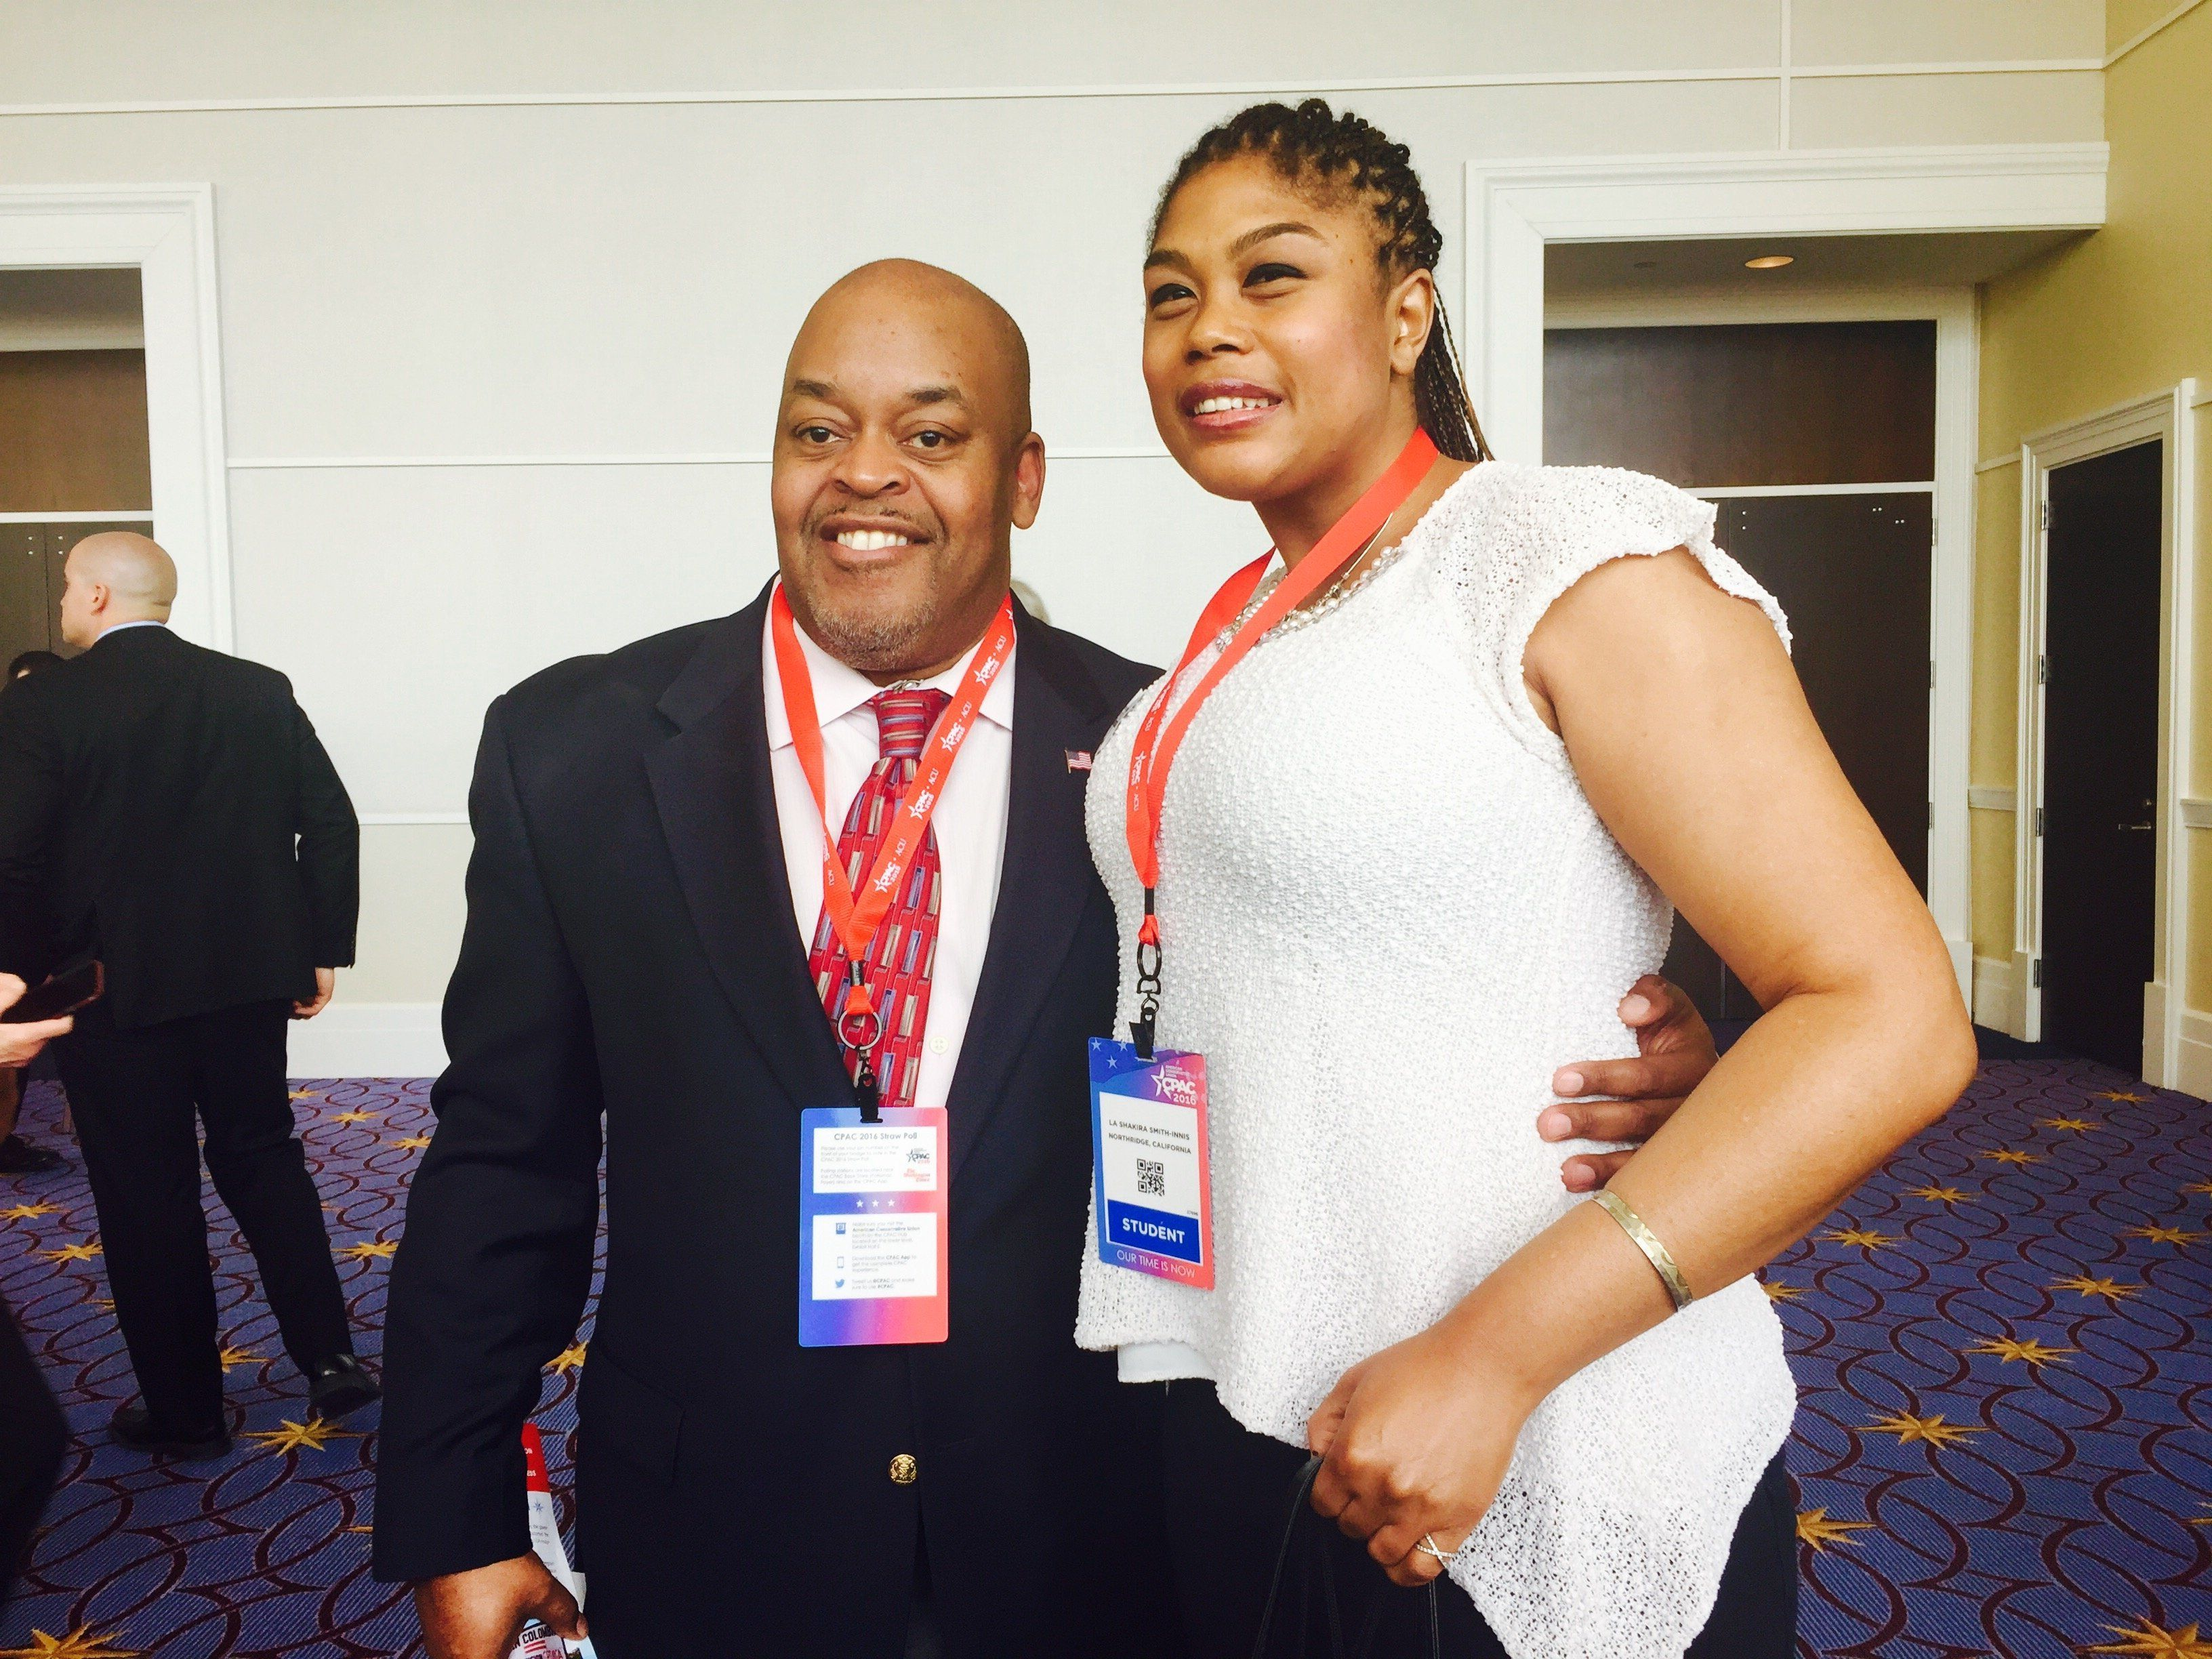 Niger (left) and Kira Innis are Republicans for different reasons. But they agree that only a GOP candidate will lead the country in the right direction.